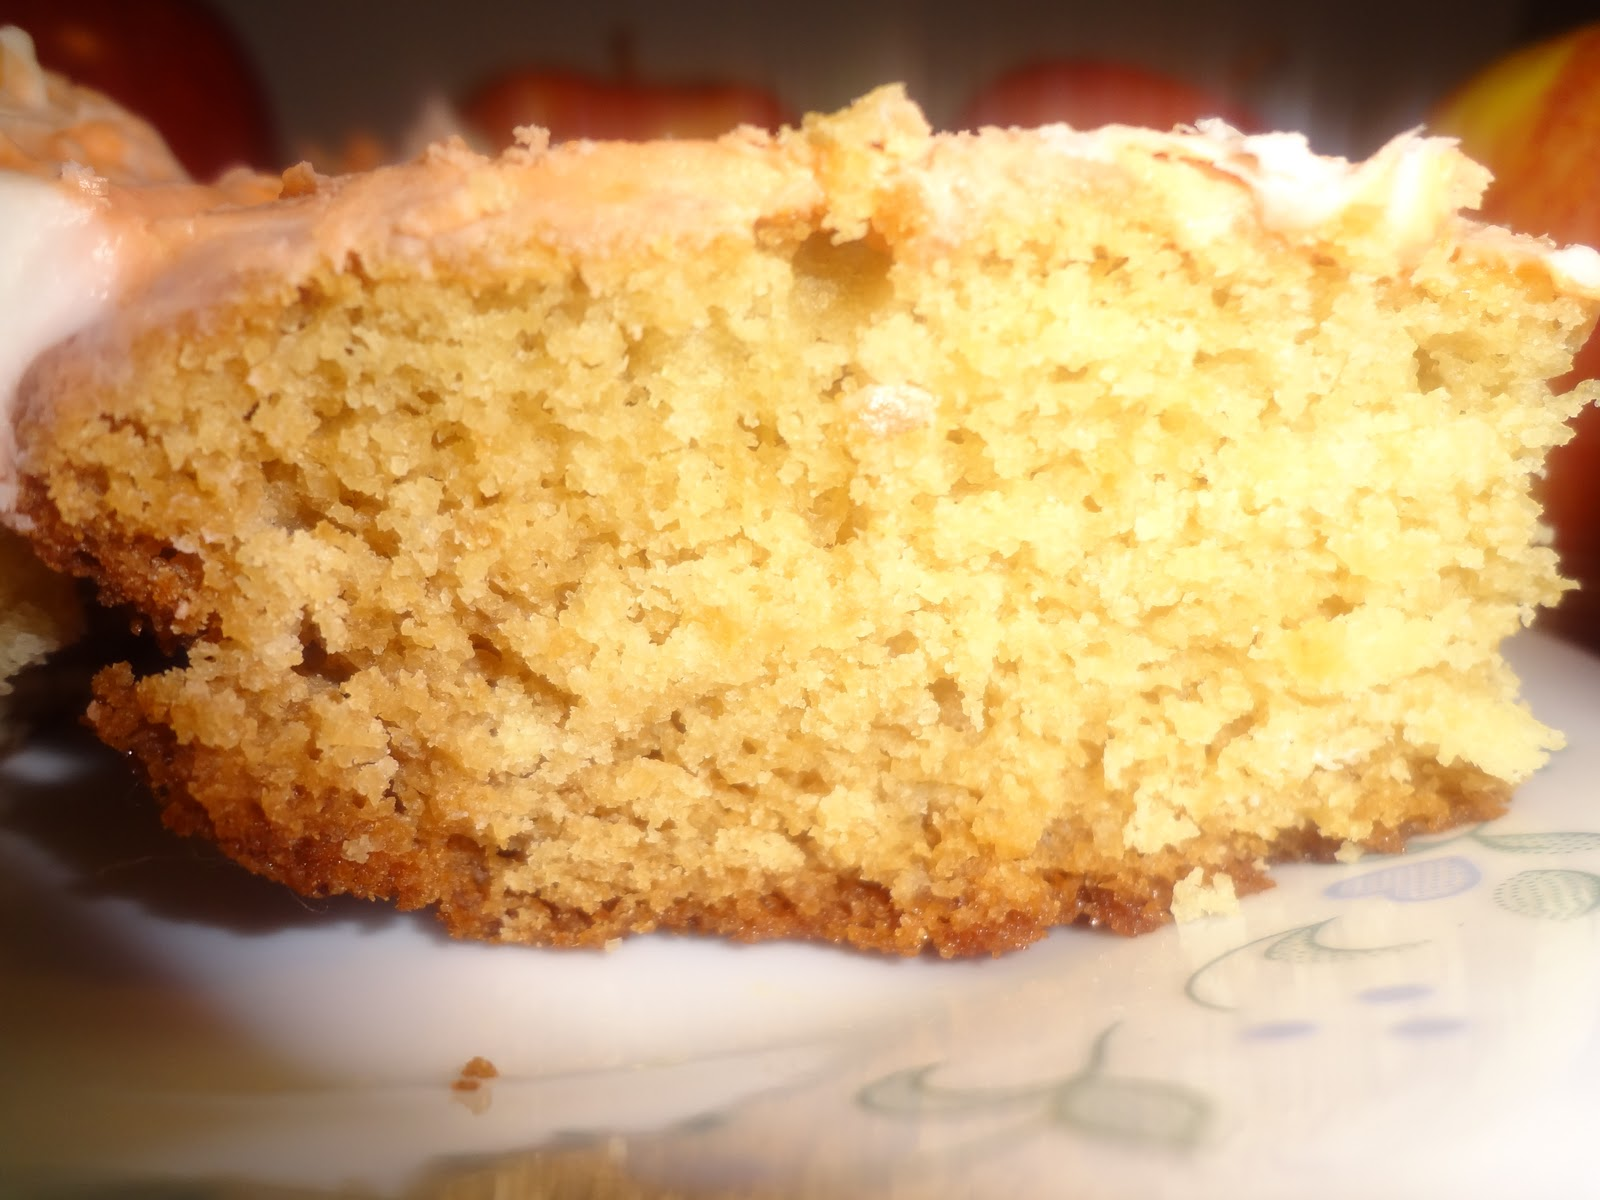 how to make a simple cake without baking powder